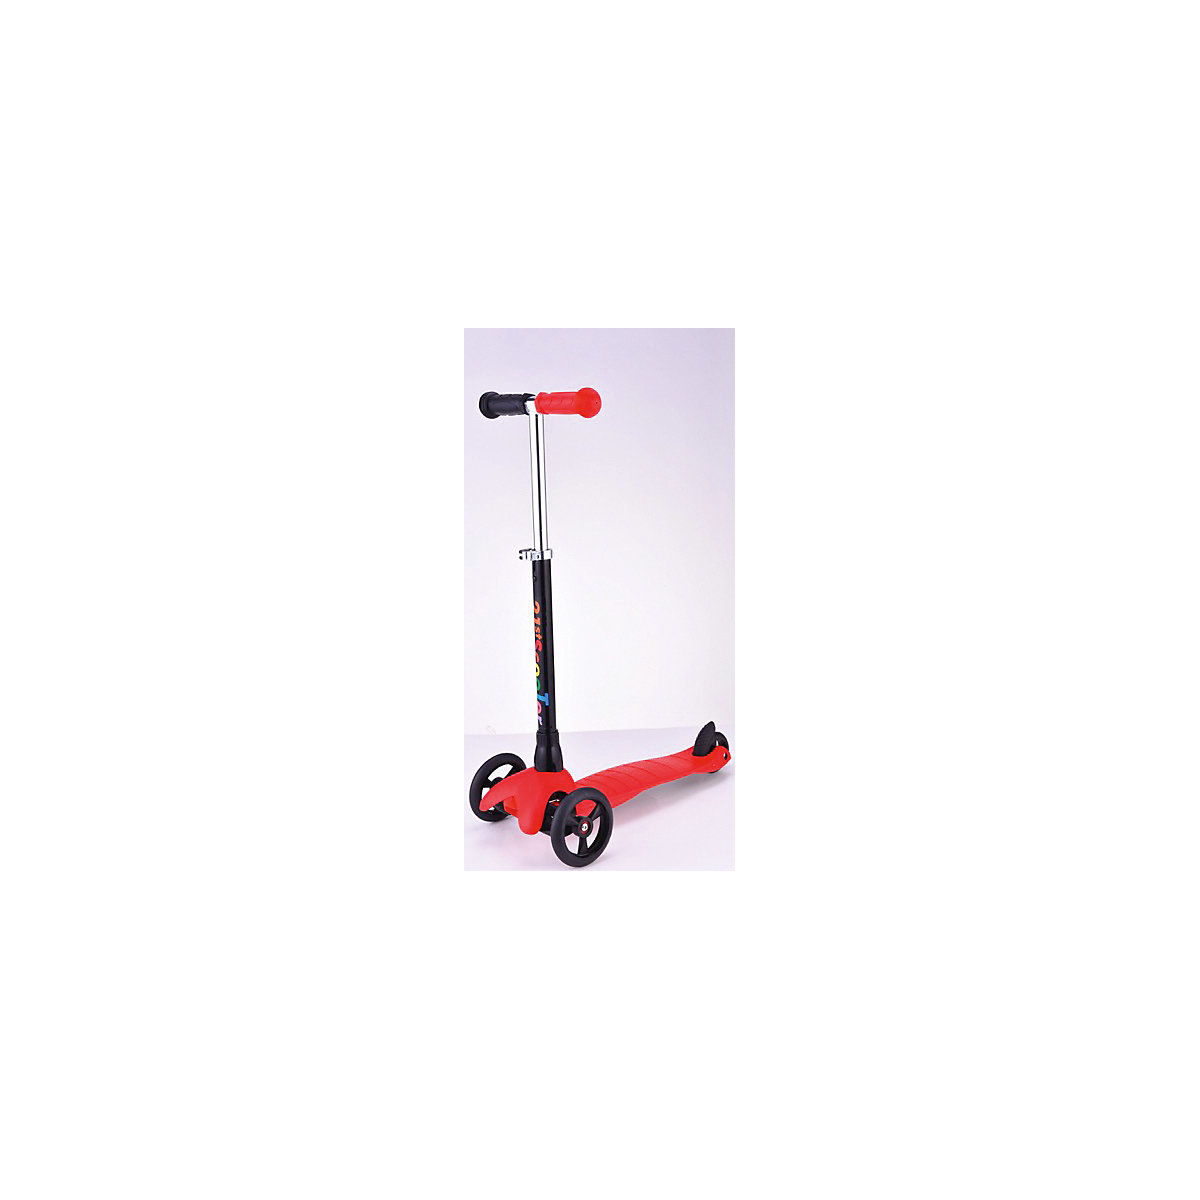 BUGGY BOOM Kick Scooters,Foot Scooters 8074993 scooter three-wheeled for children boys and girls